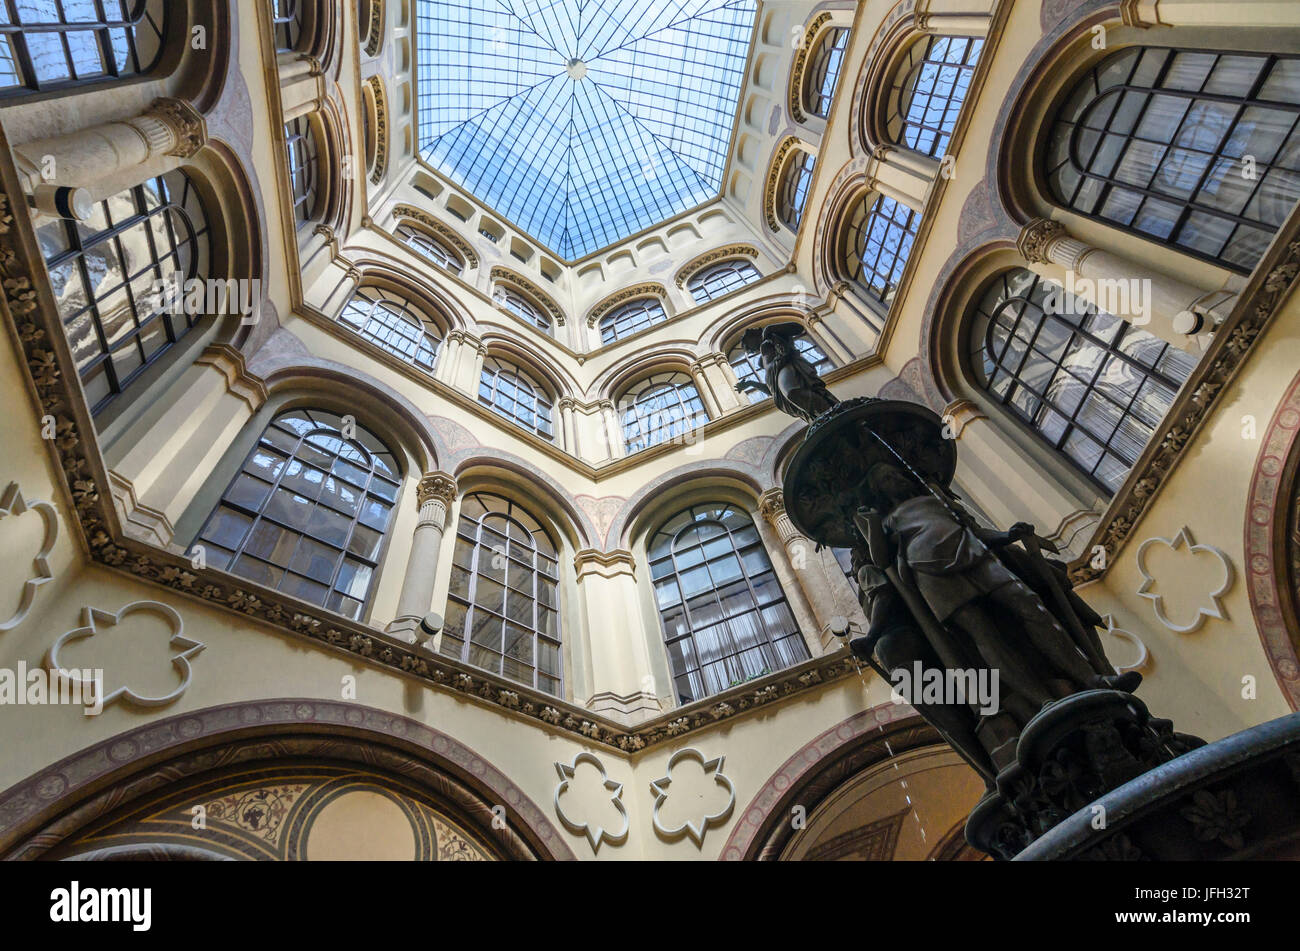 Wells at the Inner courtyard of the palace Ferstel, Austria, Vienna 01. - Stock Image